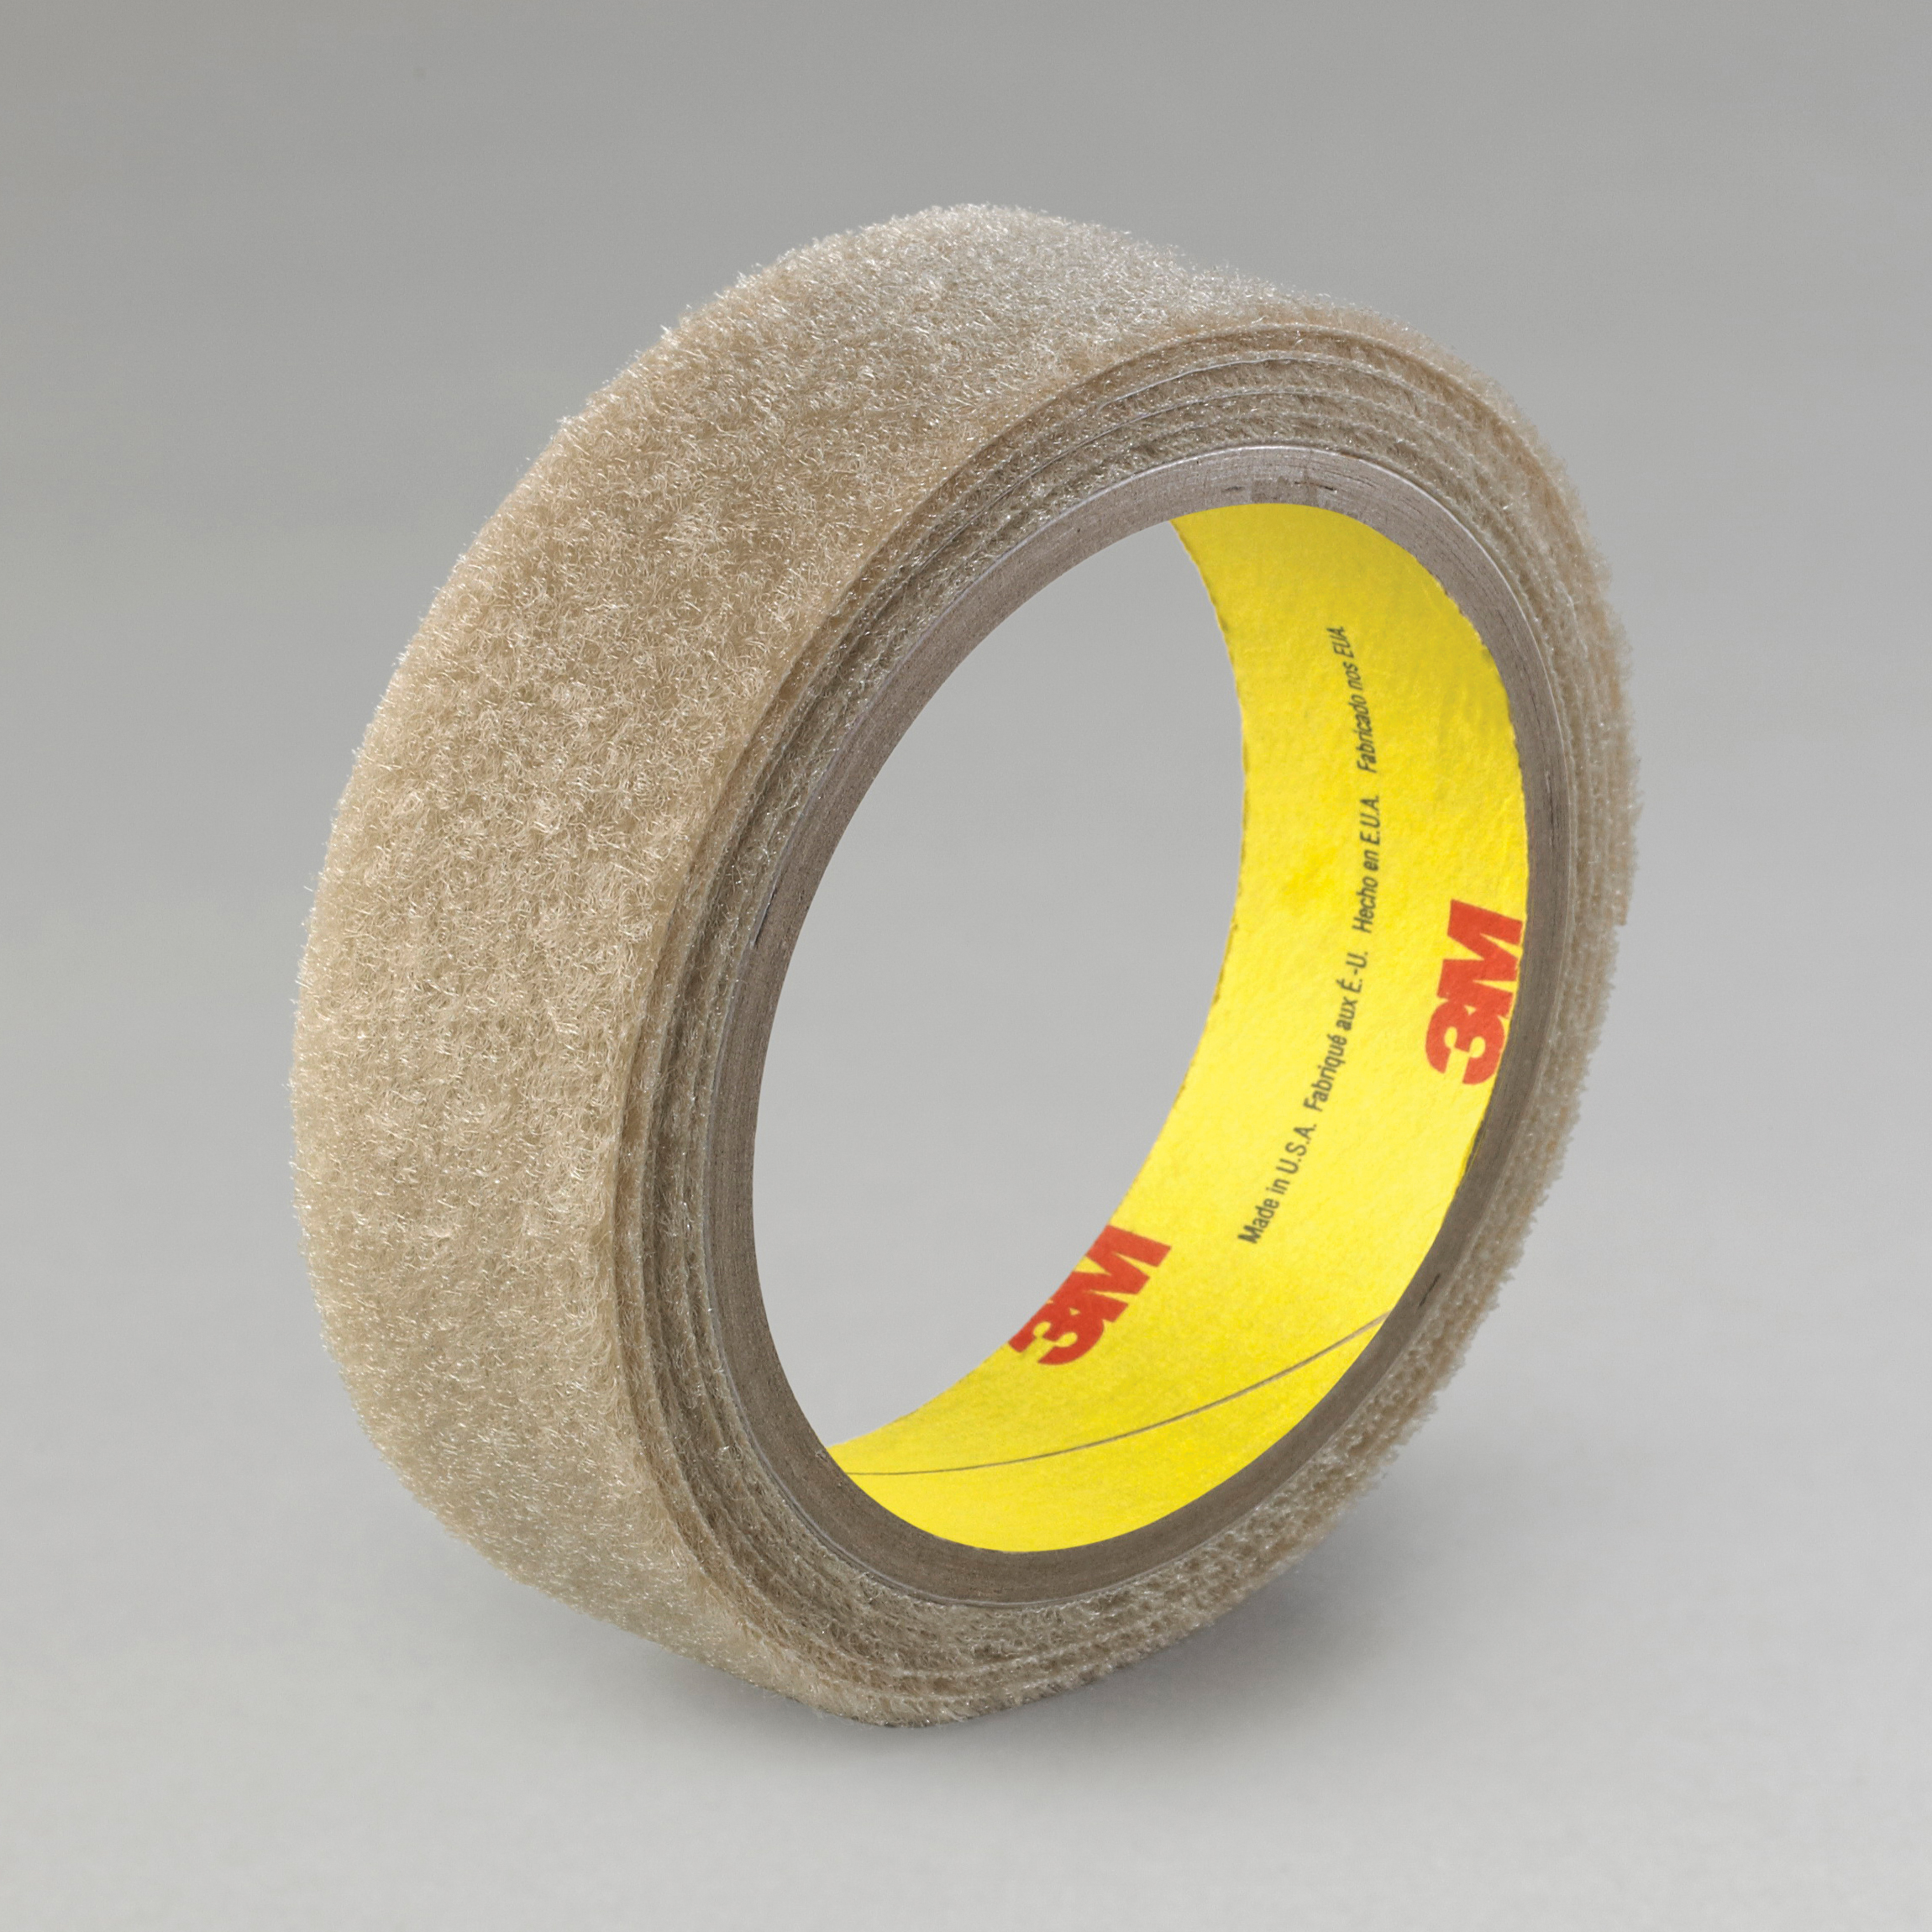 3M™ 021200-86251 Reclosable Loop Fastener Tape, 50 yd L x 1 in W, 0.15 in THK Engaged, Synthetic Rubber Adhesive, Woven Nylon Backing, Beige